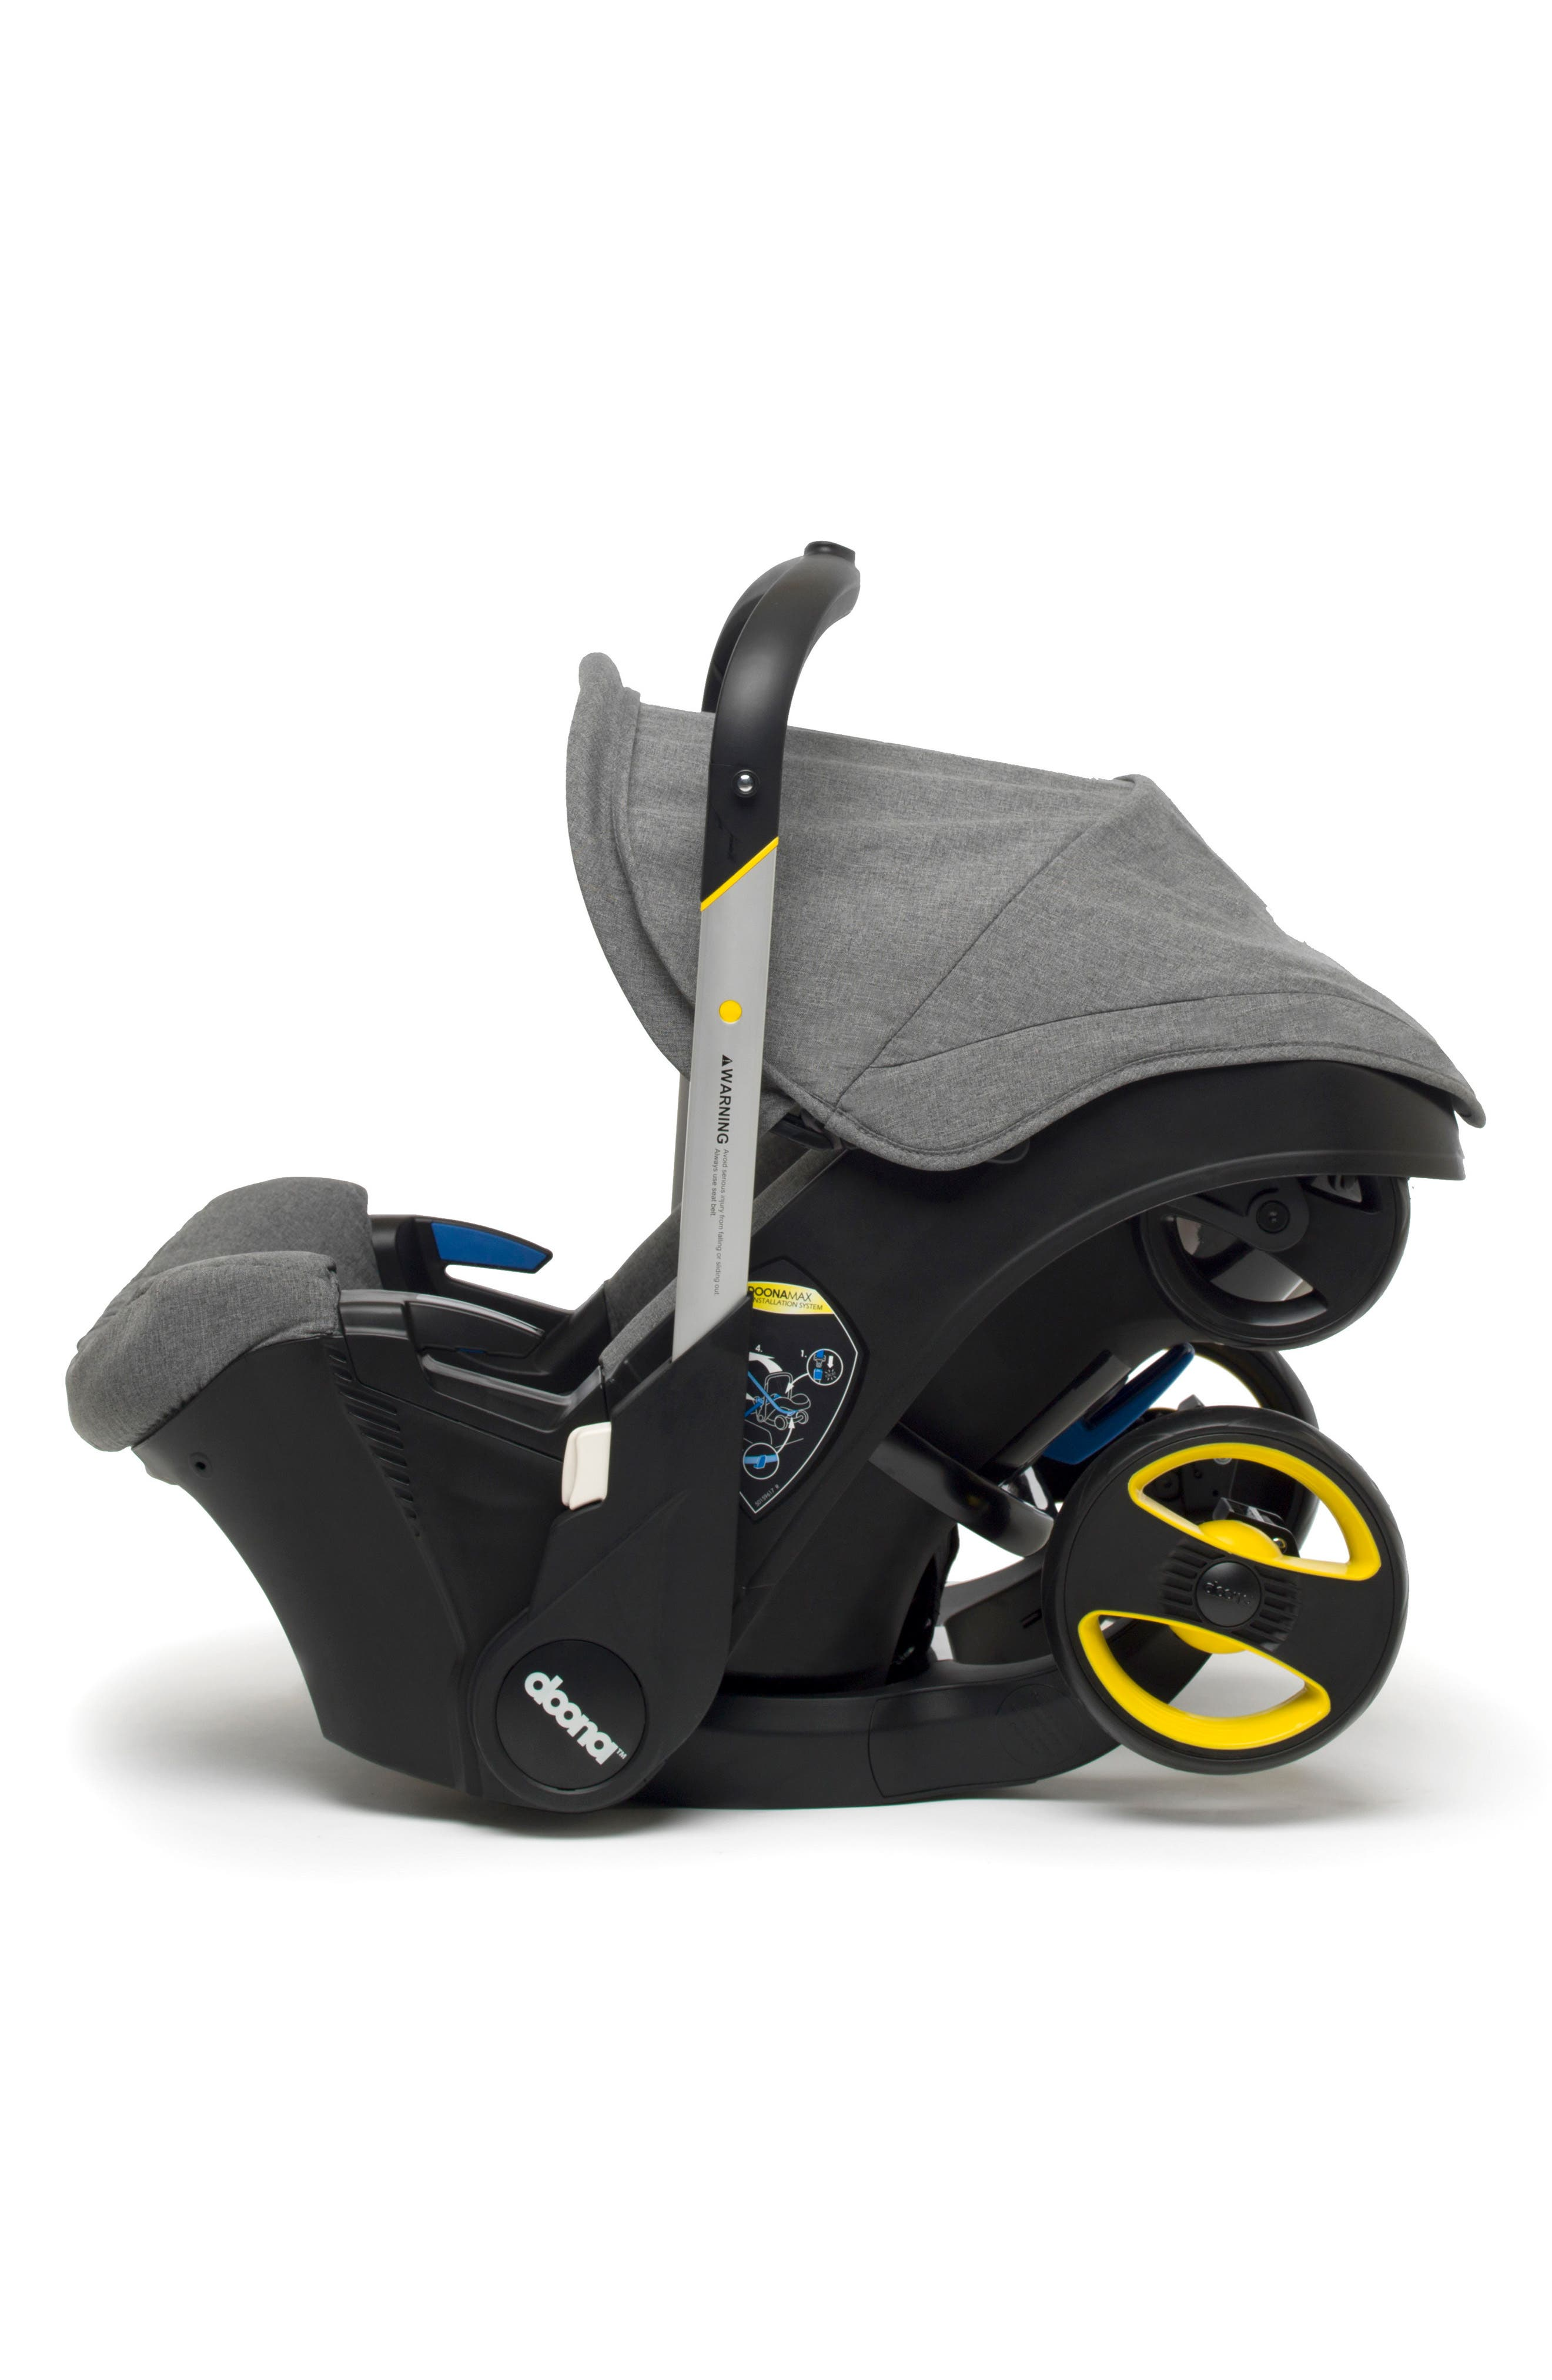 Convertible Infant Car Seat/Compact Stroller System,                             Main thumbnail 1, color,                             GREY/ STORM